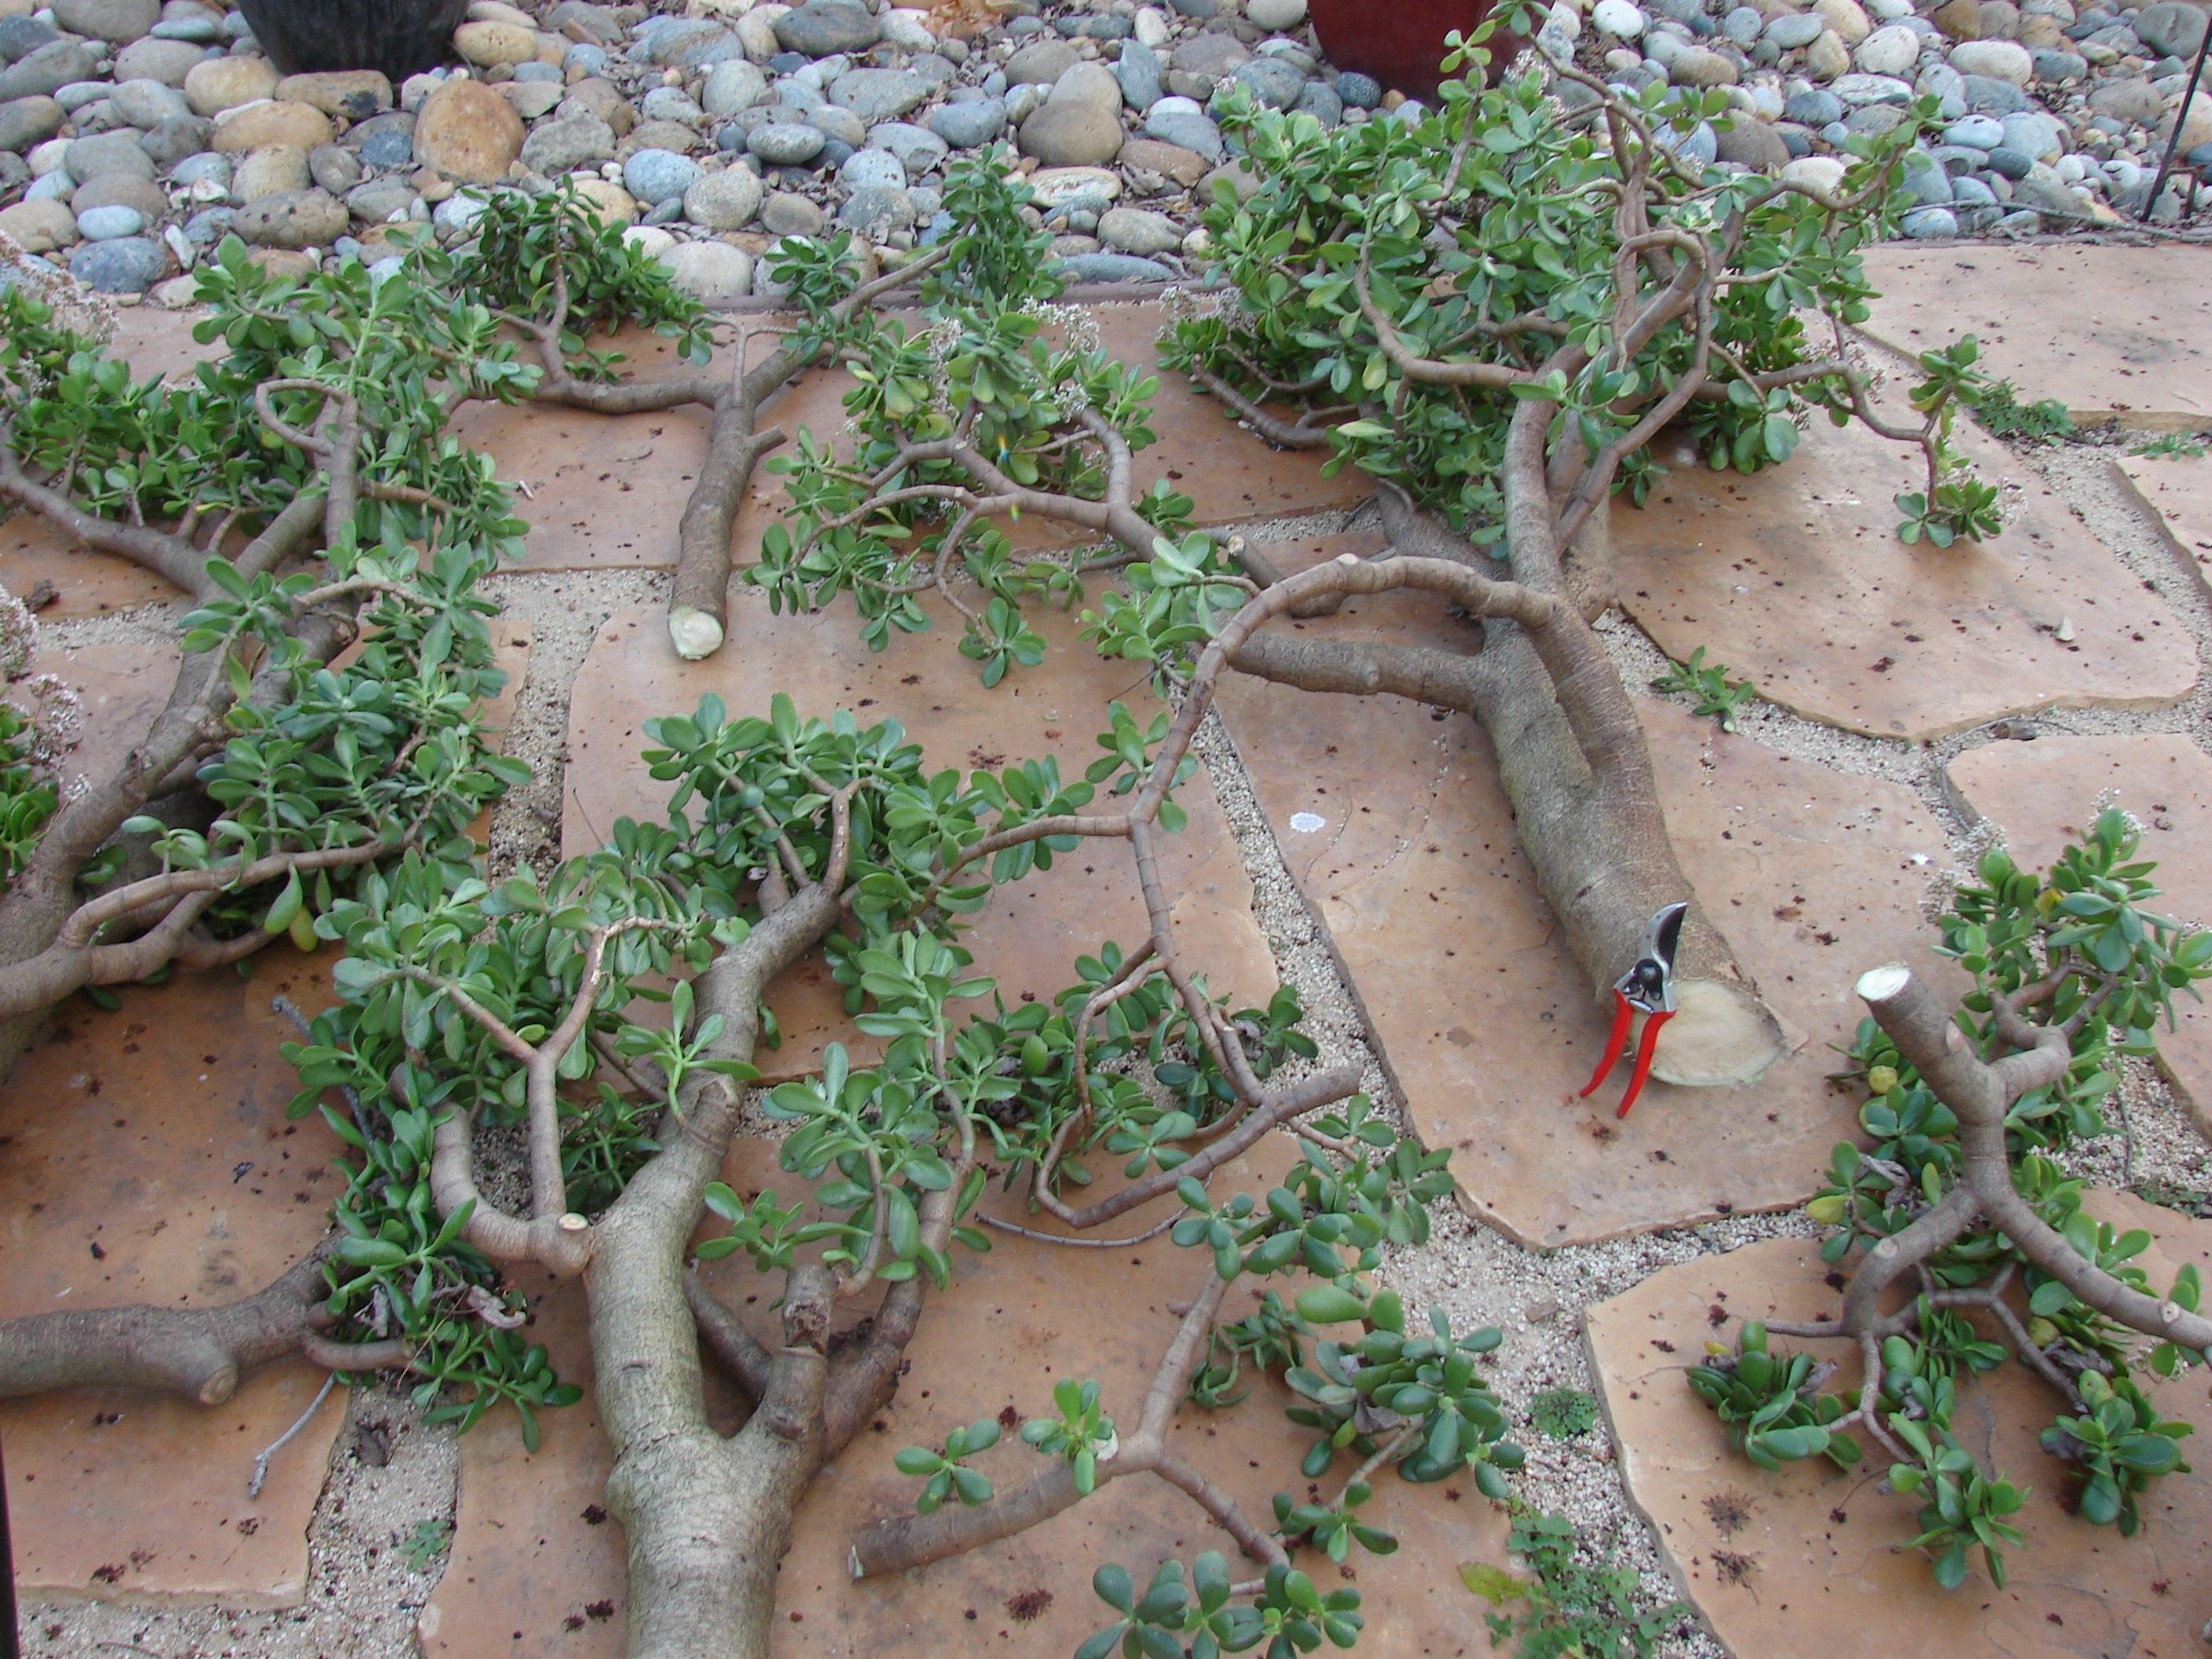 Note Trunk Size Of Jade As Compared To Pruners